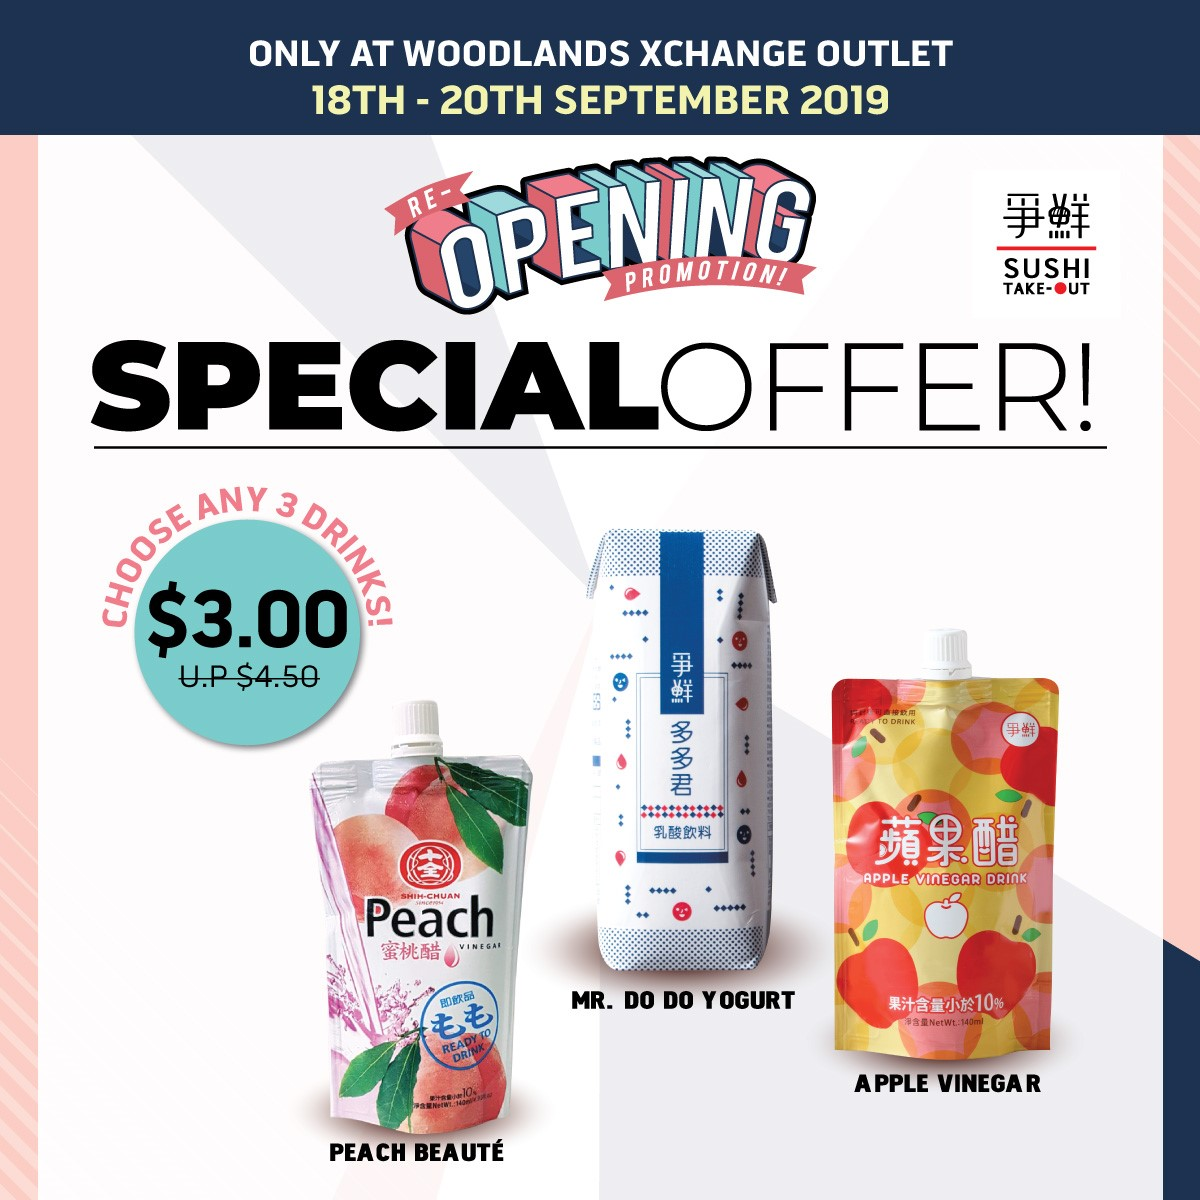 Sushi Express Singapore Purchase Any 2 Bentos & Get 3rd One FREE Promotion 18-20 Sep 2019 | Why Not Deals 1 & Promotions